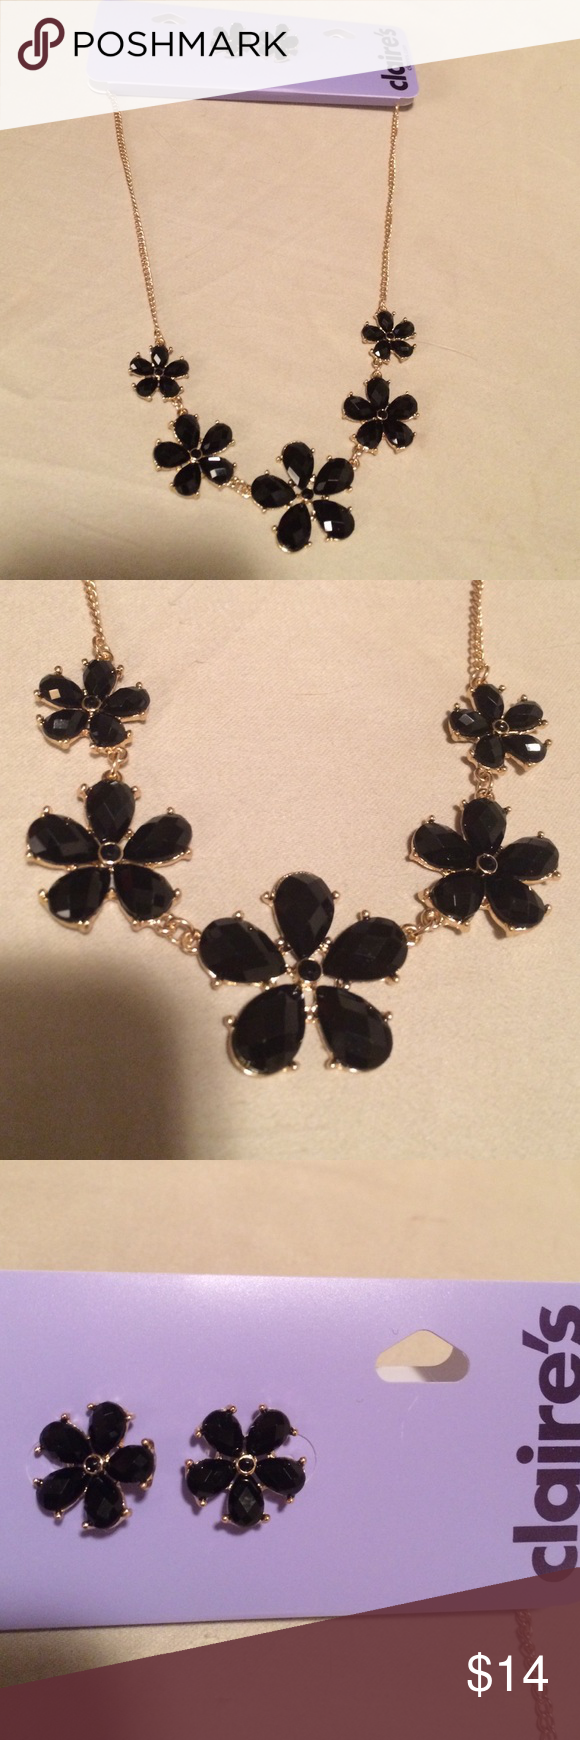 A pretty black necklace & matching earrings A pretty black necklace & matching earrings from Claire's. Brand new. Never used Claire's Jewelry